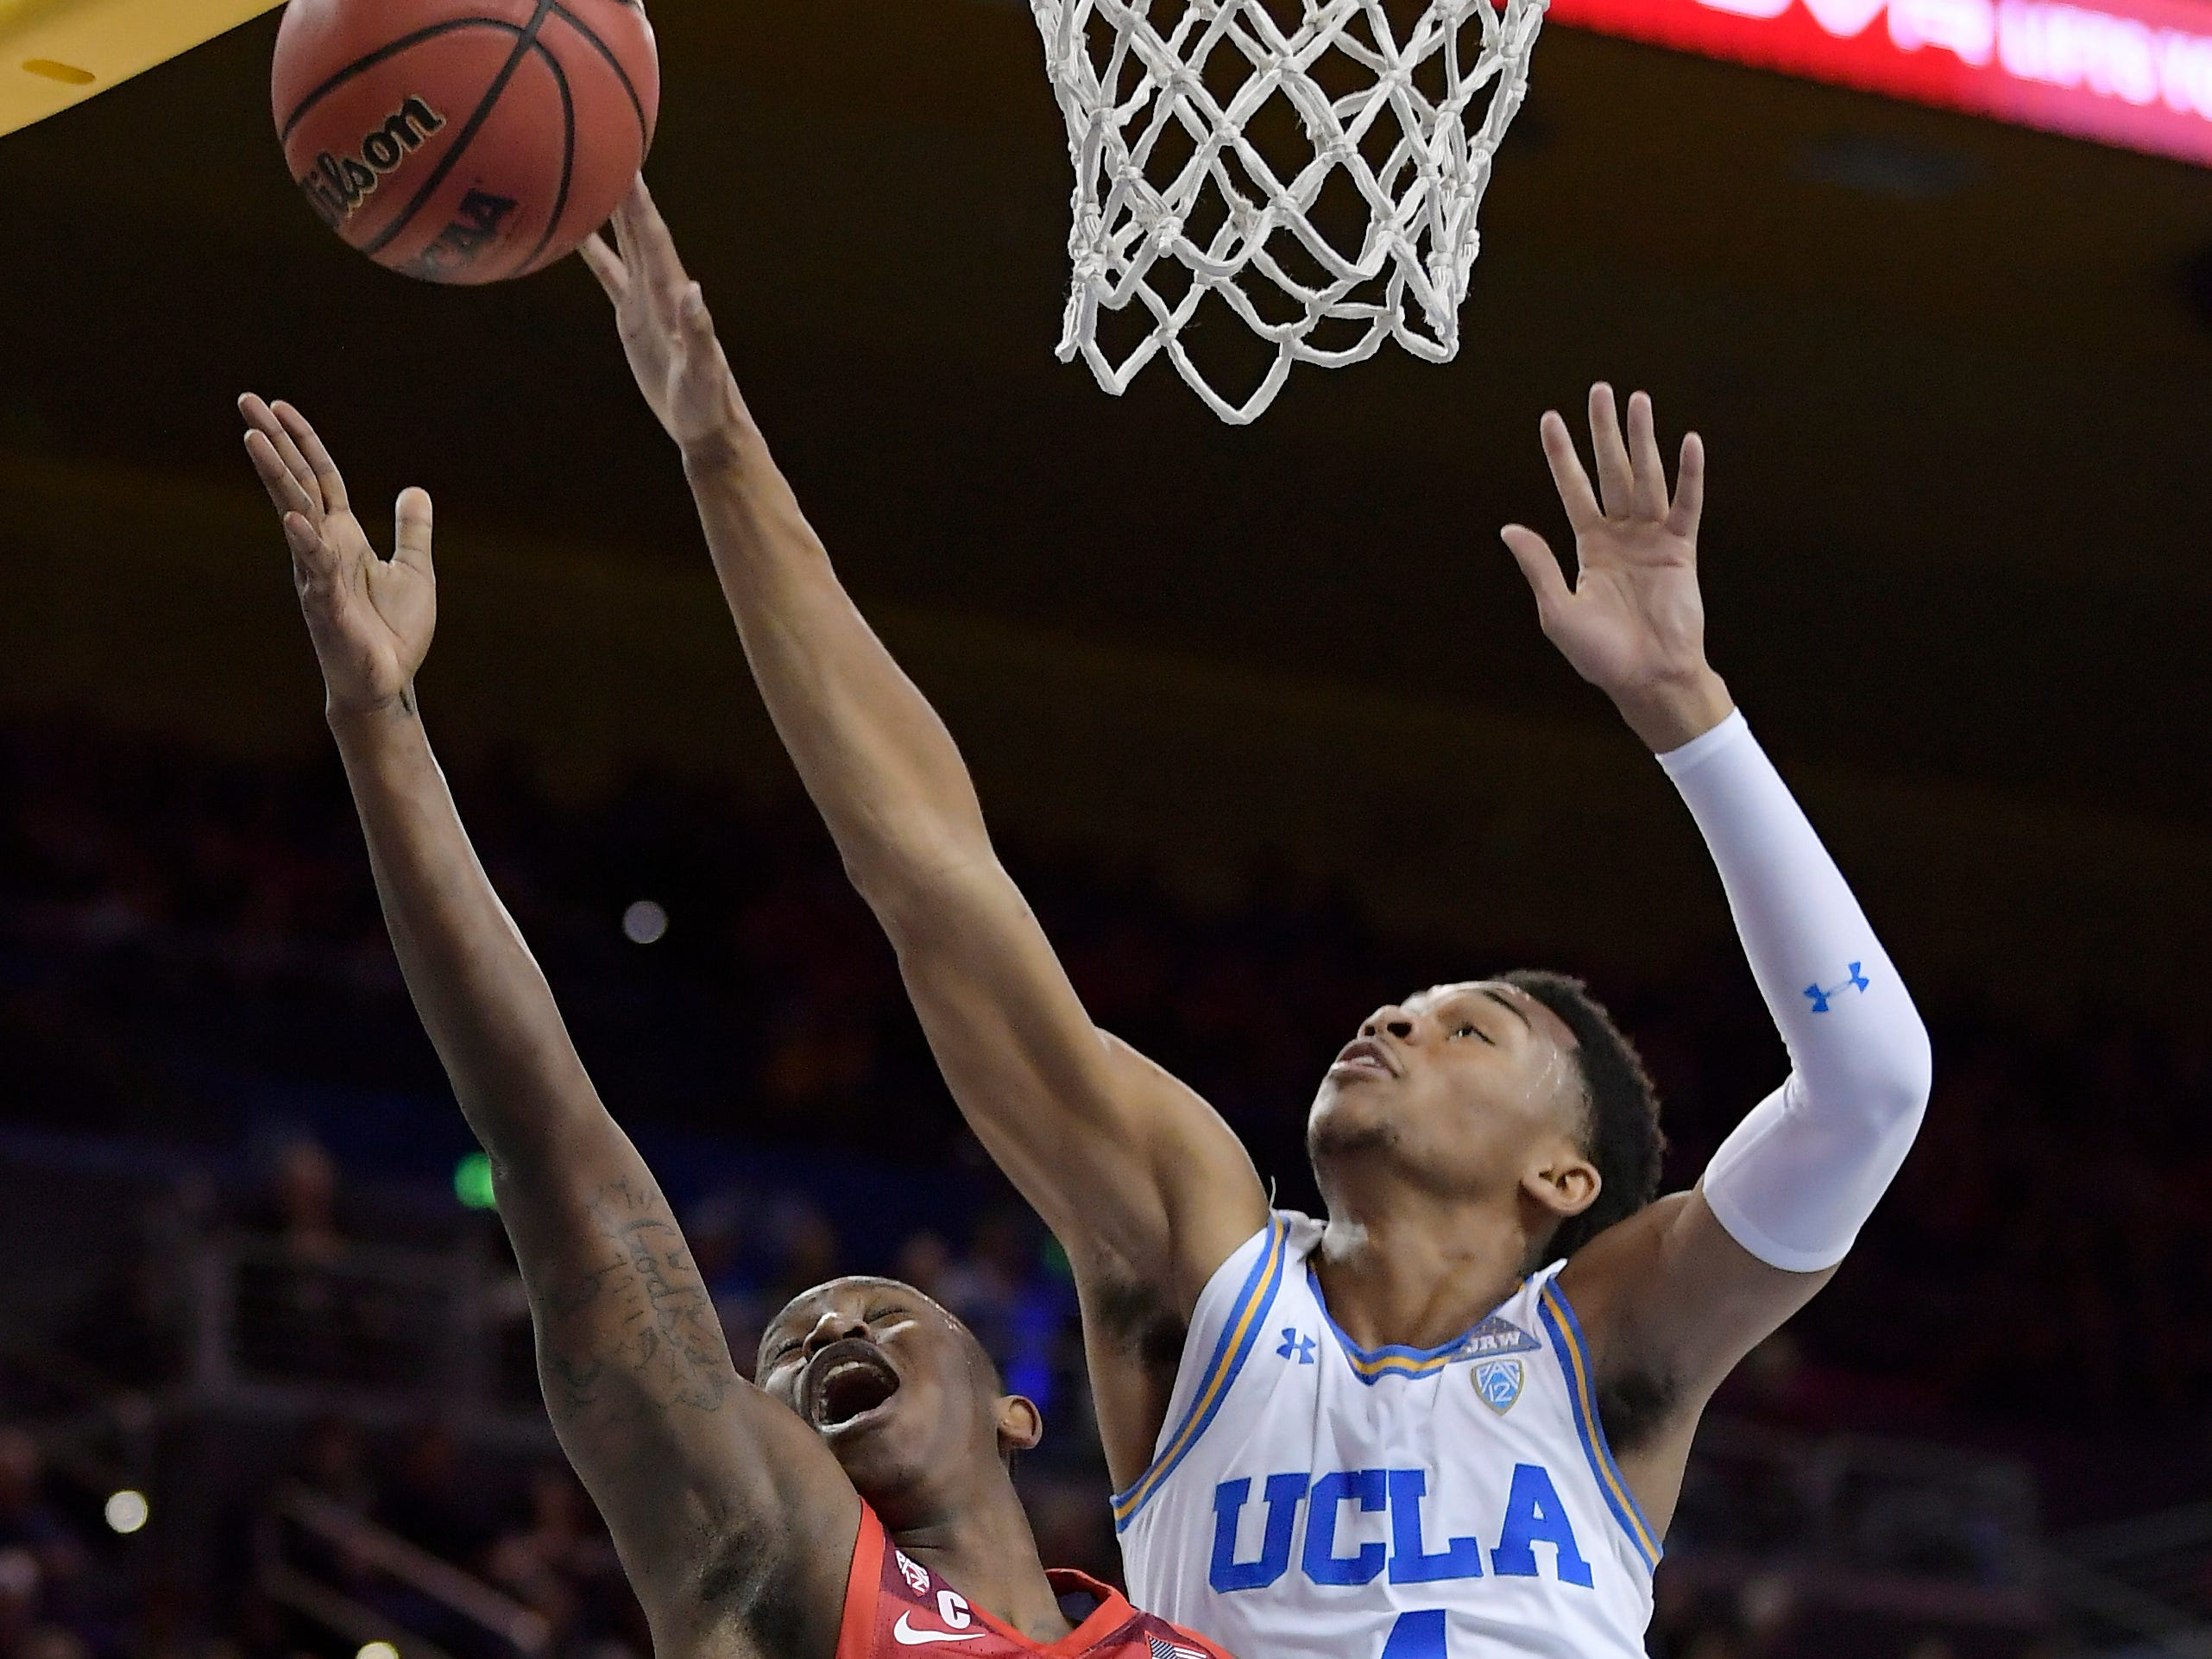 Arizona guard Justin Coleman, left, shoots as UCLA guard Jaylen Hands defends during the first half of an NCAA college basketball game Saturday, Jan. 26, 2019, in Los Angeles.